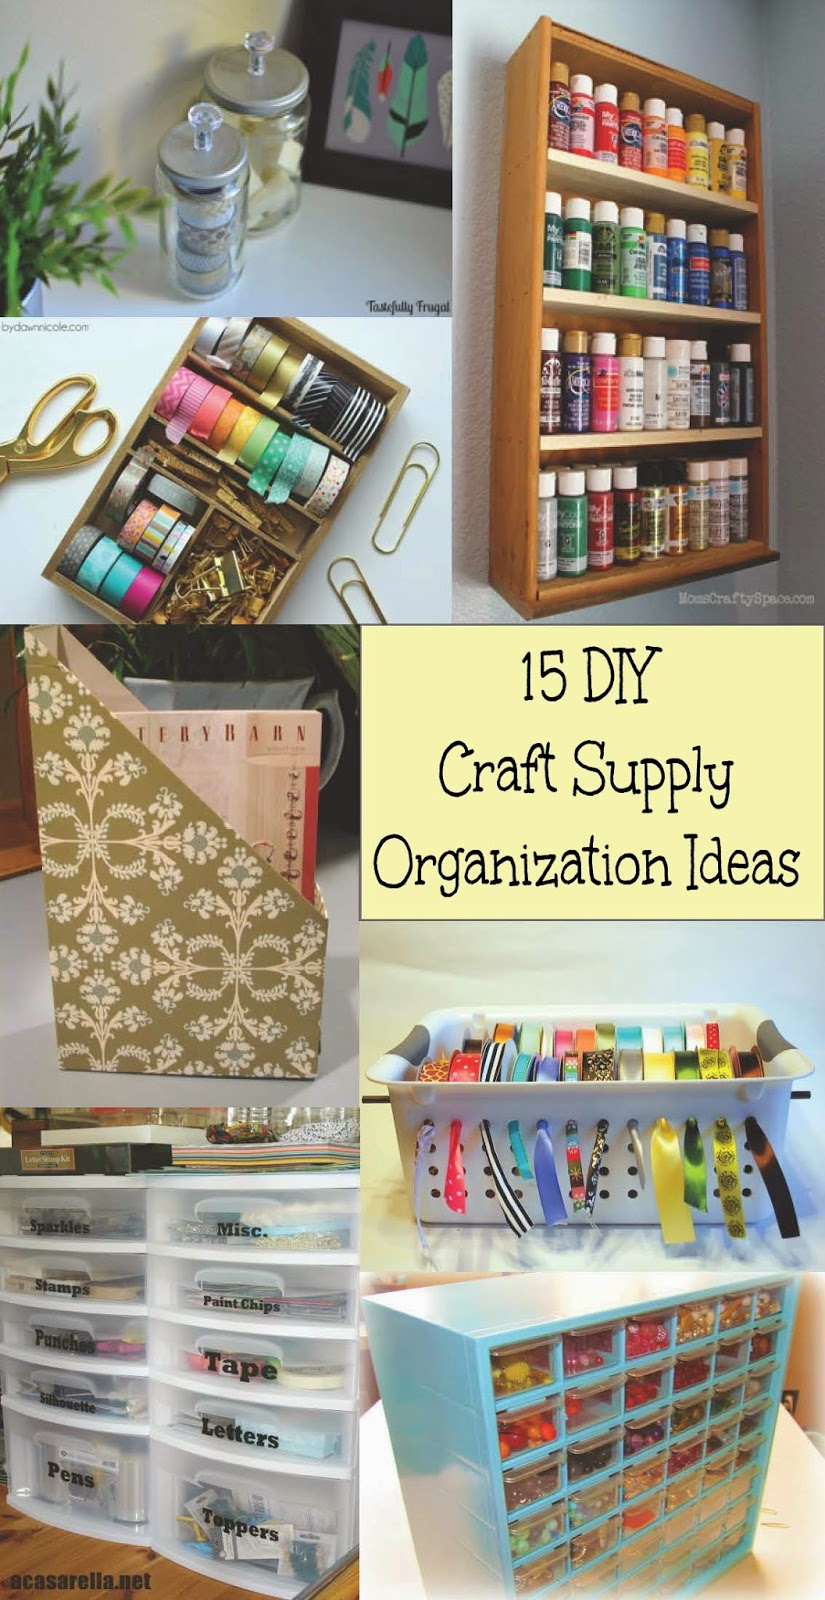 15 diy craft supply organization ideas home crafts by ali